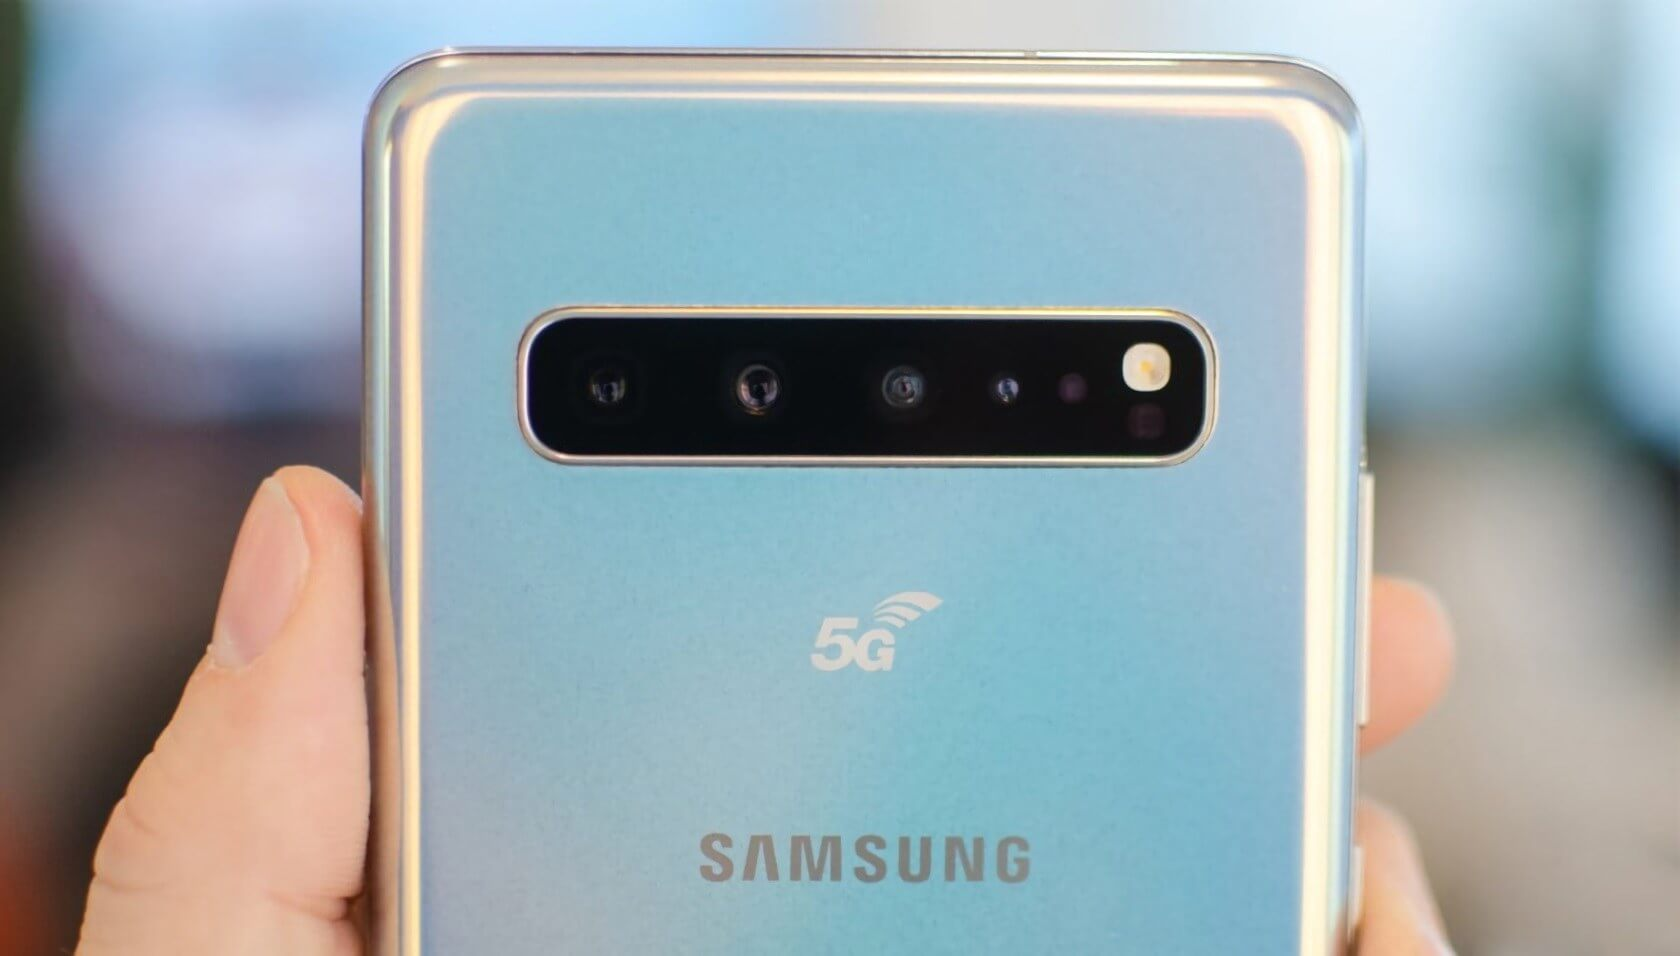 Samsung's Galaxy S10 5G is Launching in Korea on April 5